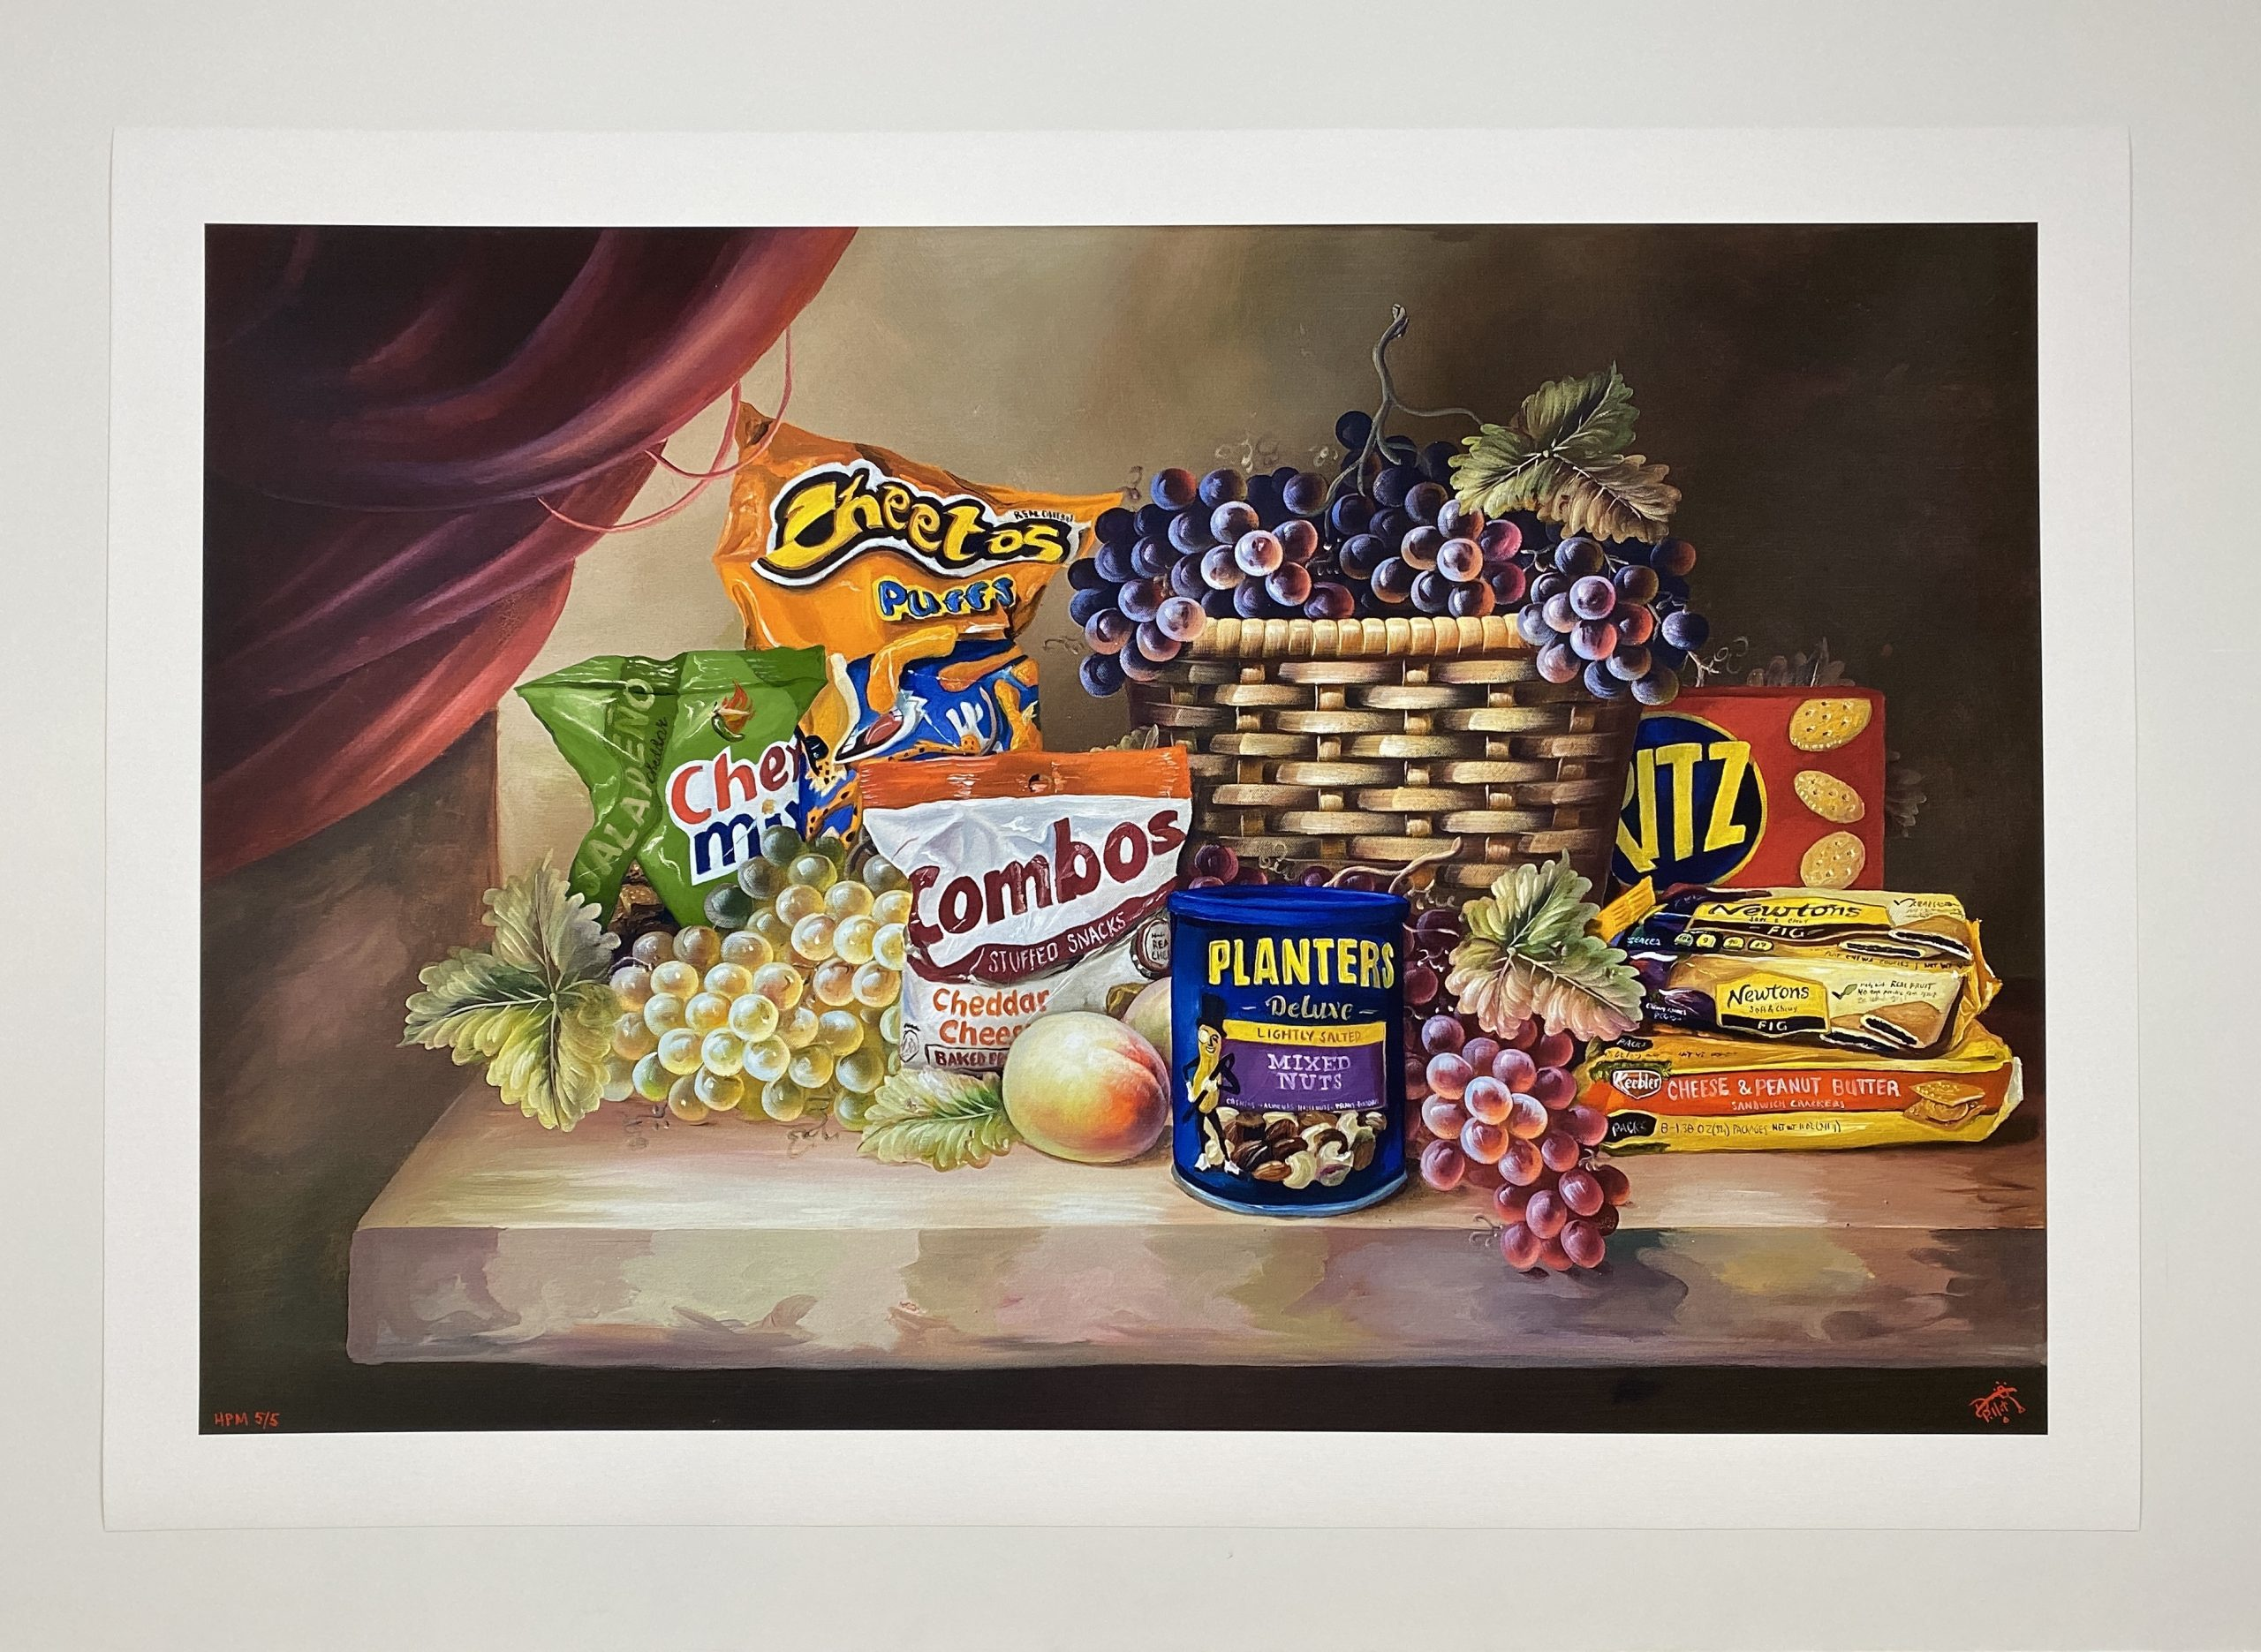 Shelf Life II (Jalapeno Chex Mix) by Dave Pollot